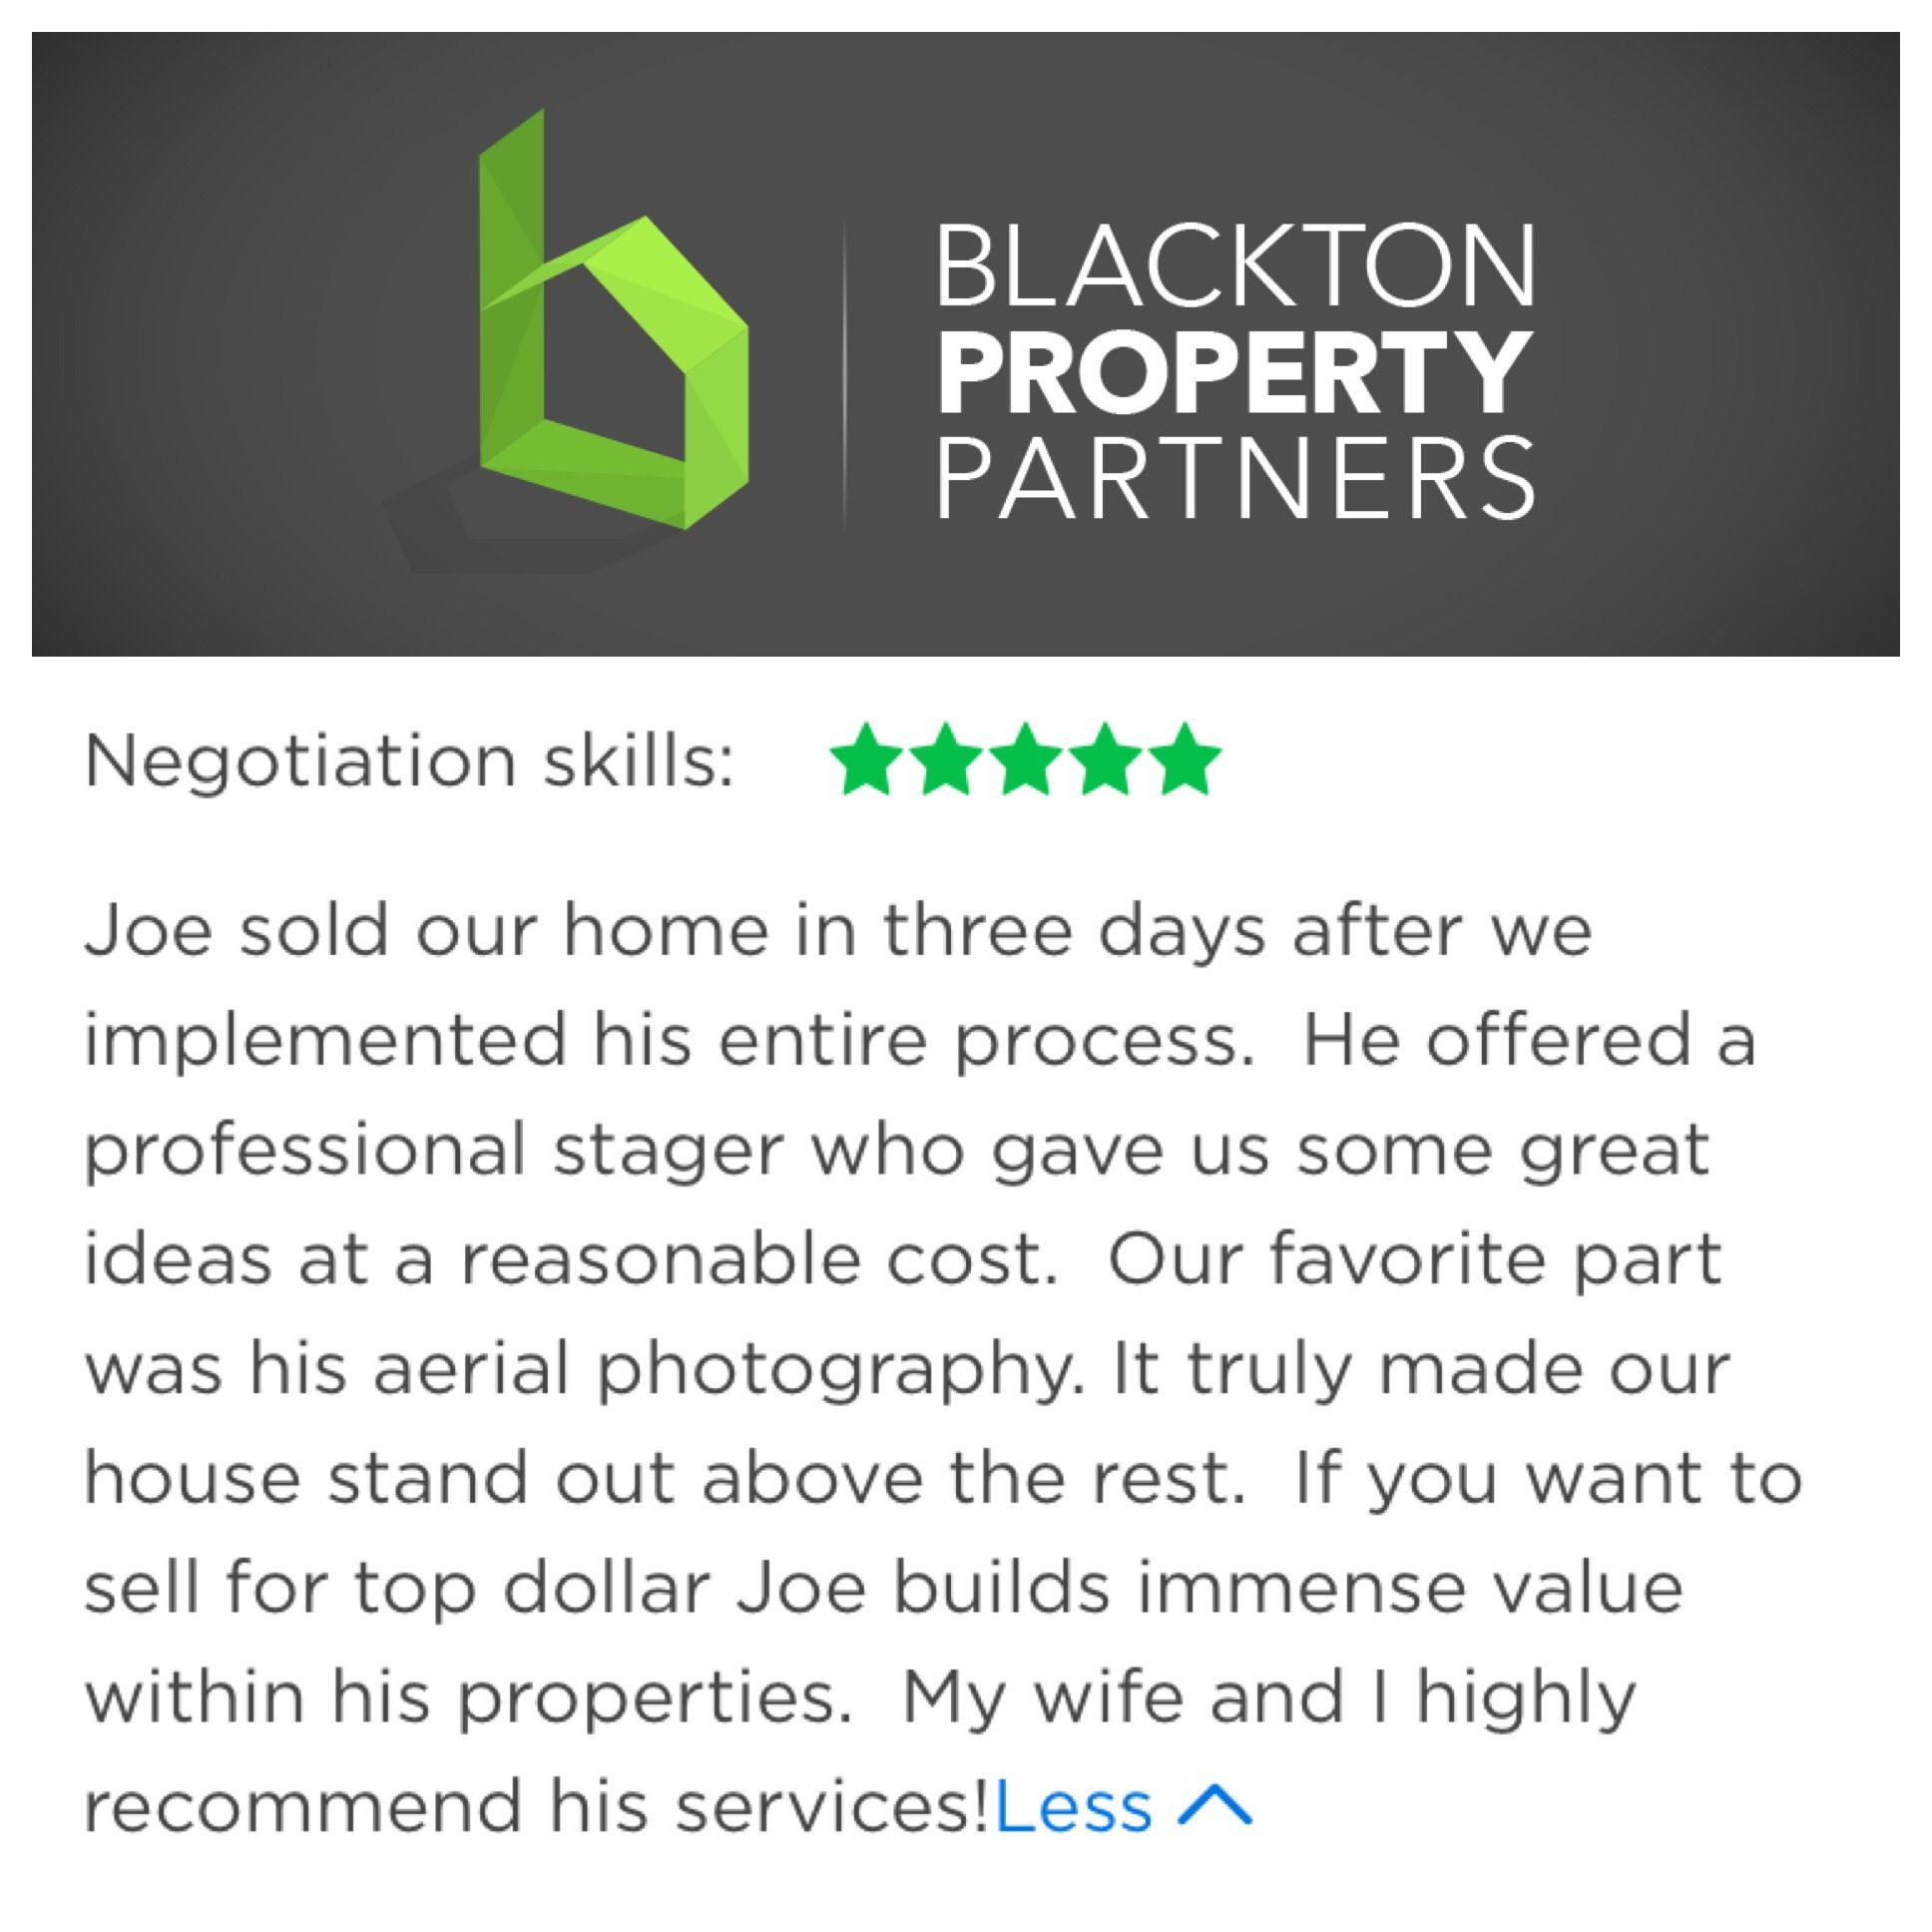 Blessed With Inspiring Clients Daily Blacktonpropertypartners